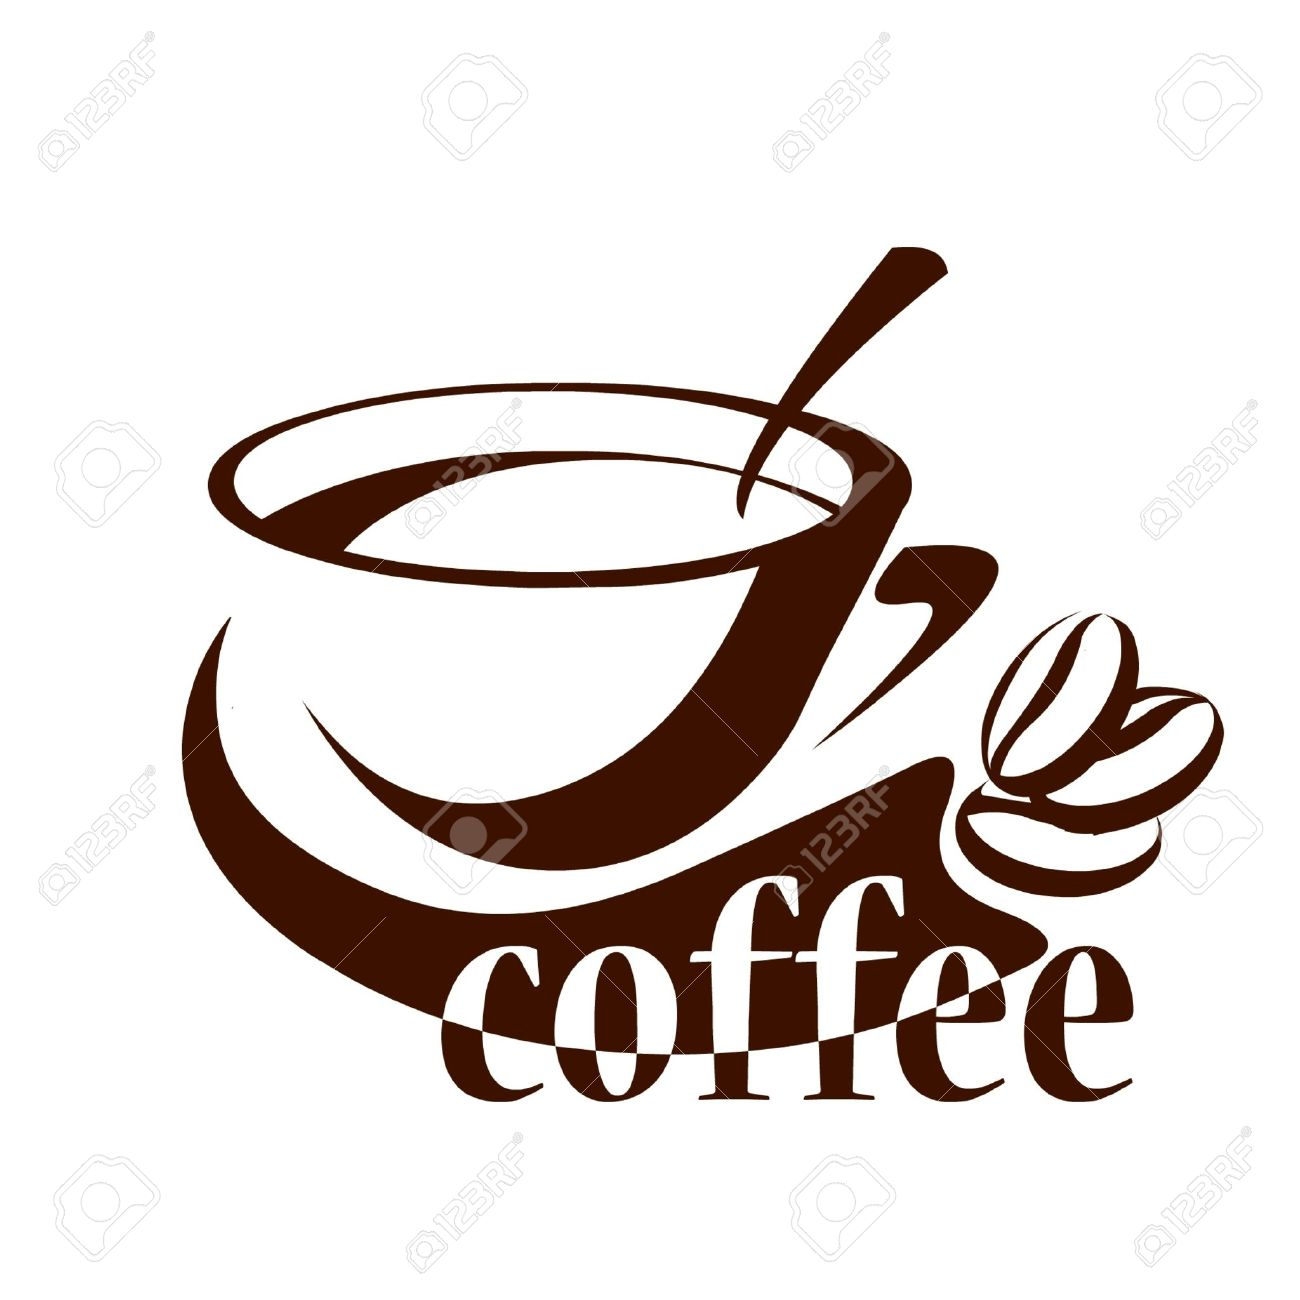 37,080 Mocha Coffee Stock Vector Illustration And Royalty Free.